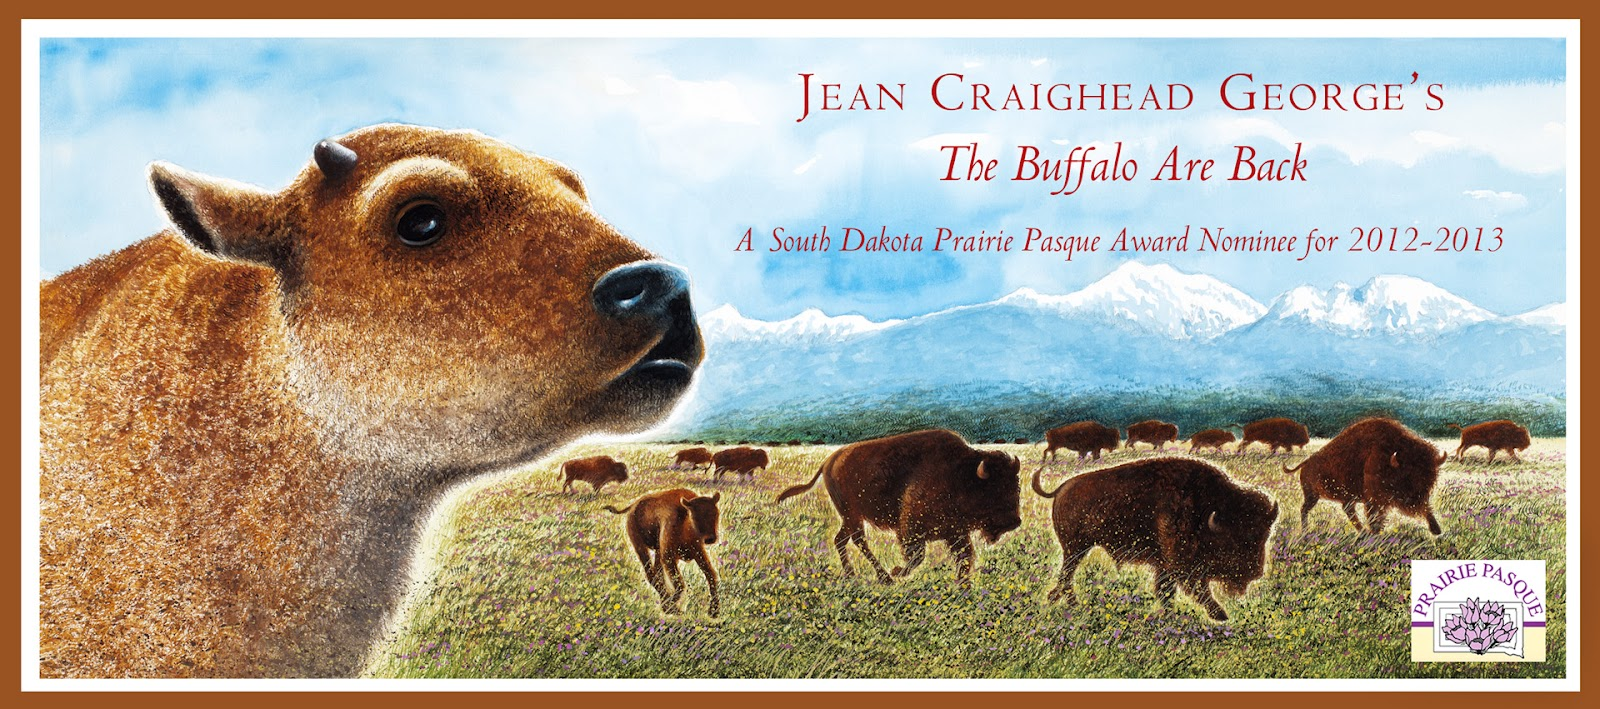 6e68a50ee4c The Buffalo Are Back Jean Craighead George and Wendall Minor